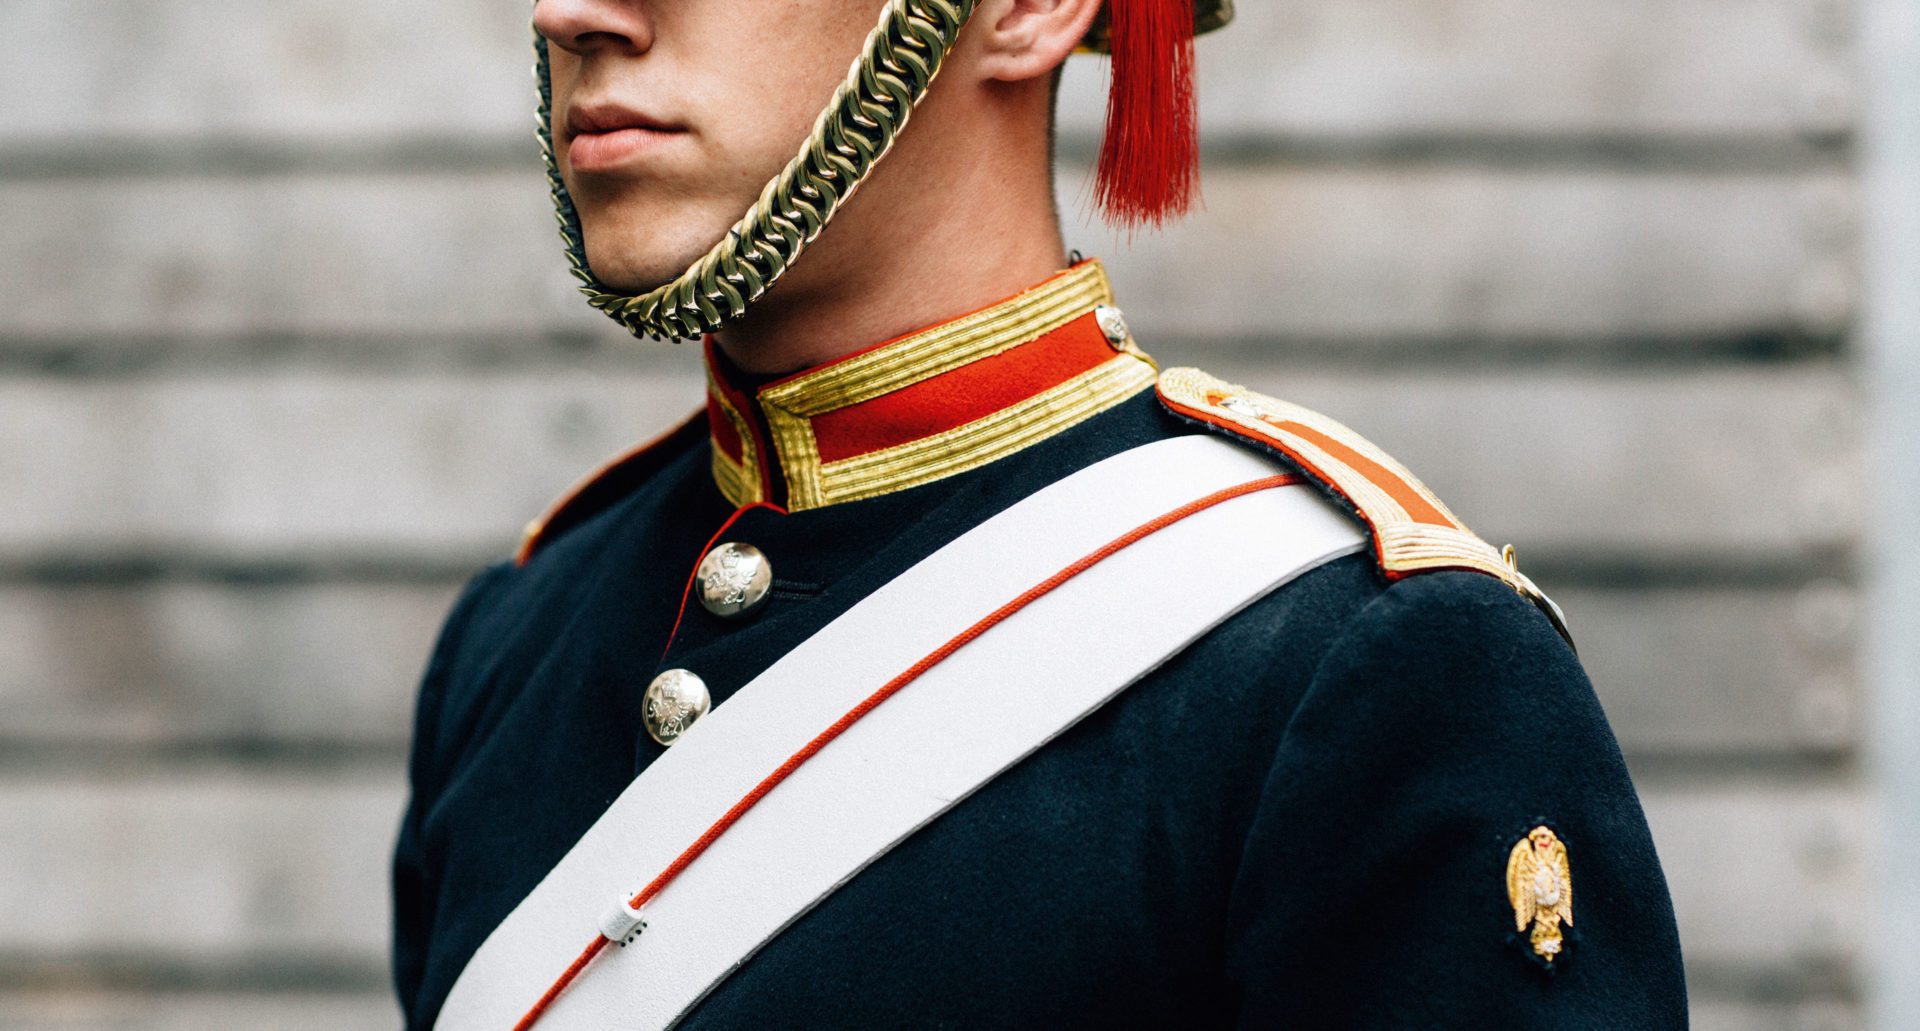 Inside the Household Cavalry